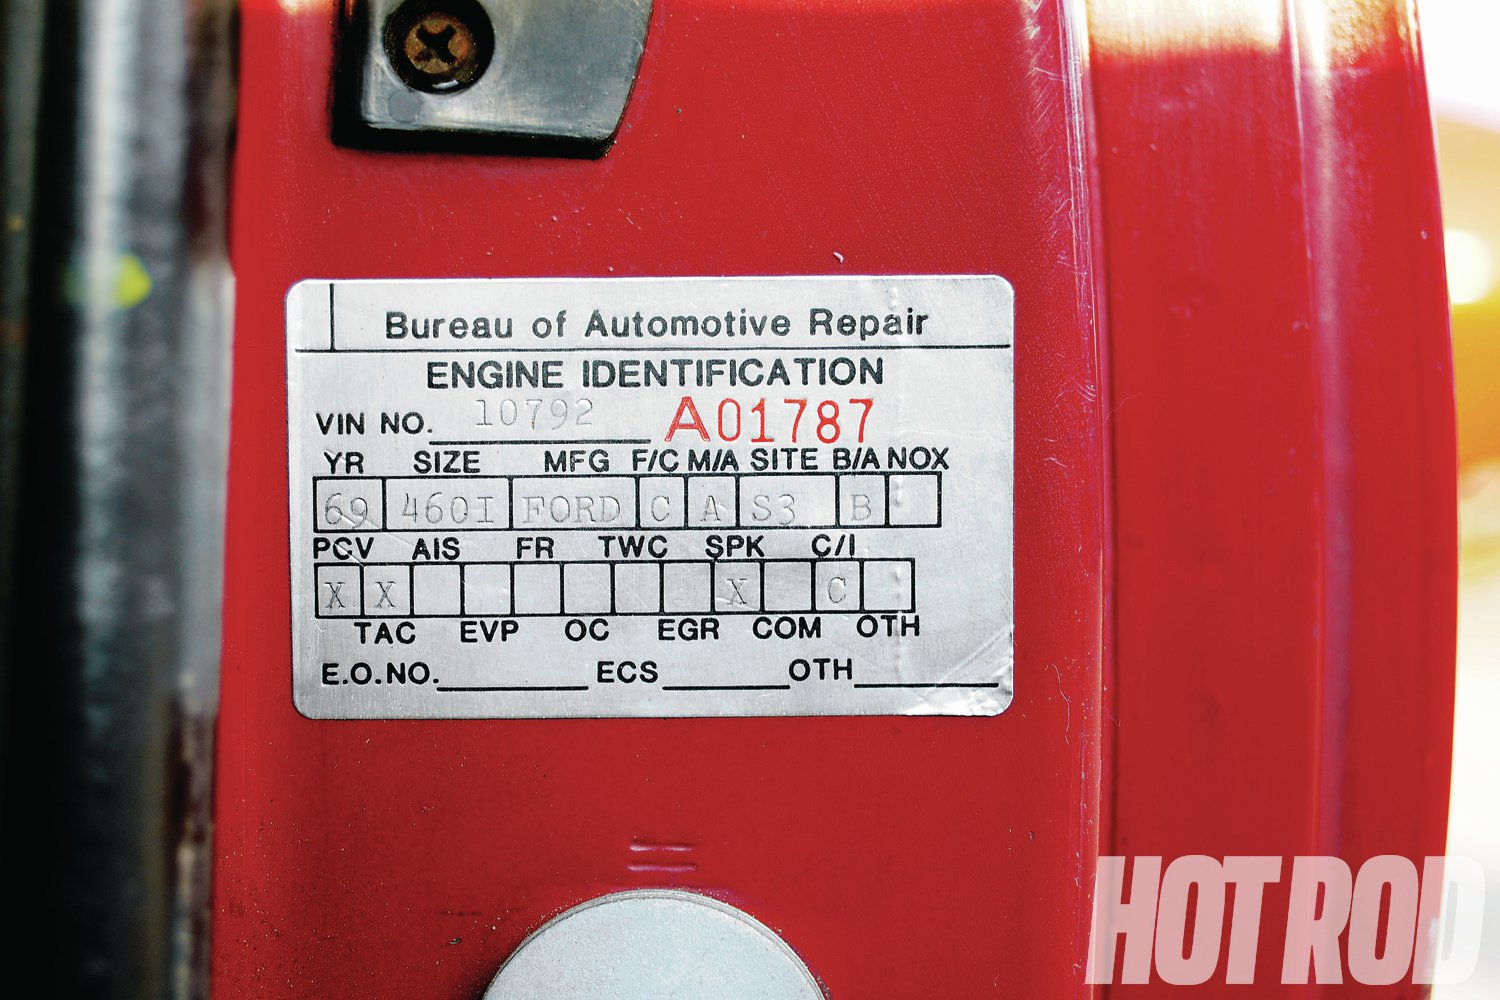 """This is a typical California referee engine swap sticker. The rare """"B"""" in the B/A box means the '69 Lincoln 460 V8 was legally swapped into this '83 Mustang """"Before"""" March '84. Prior to that date, California's swap regs were based on the engine year instead of the car's model year. As noted on the sticker, only a PCV valve, TAC (thermostatic air cleaner), spark-controlled distributor, and stock carb were needed. Lucky stiff!"""